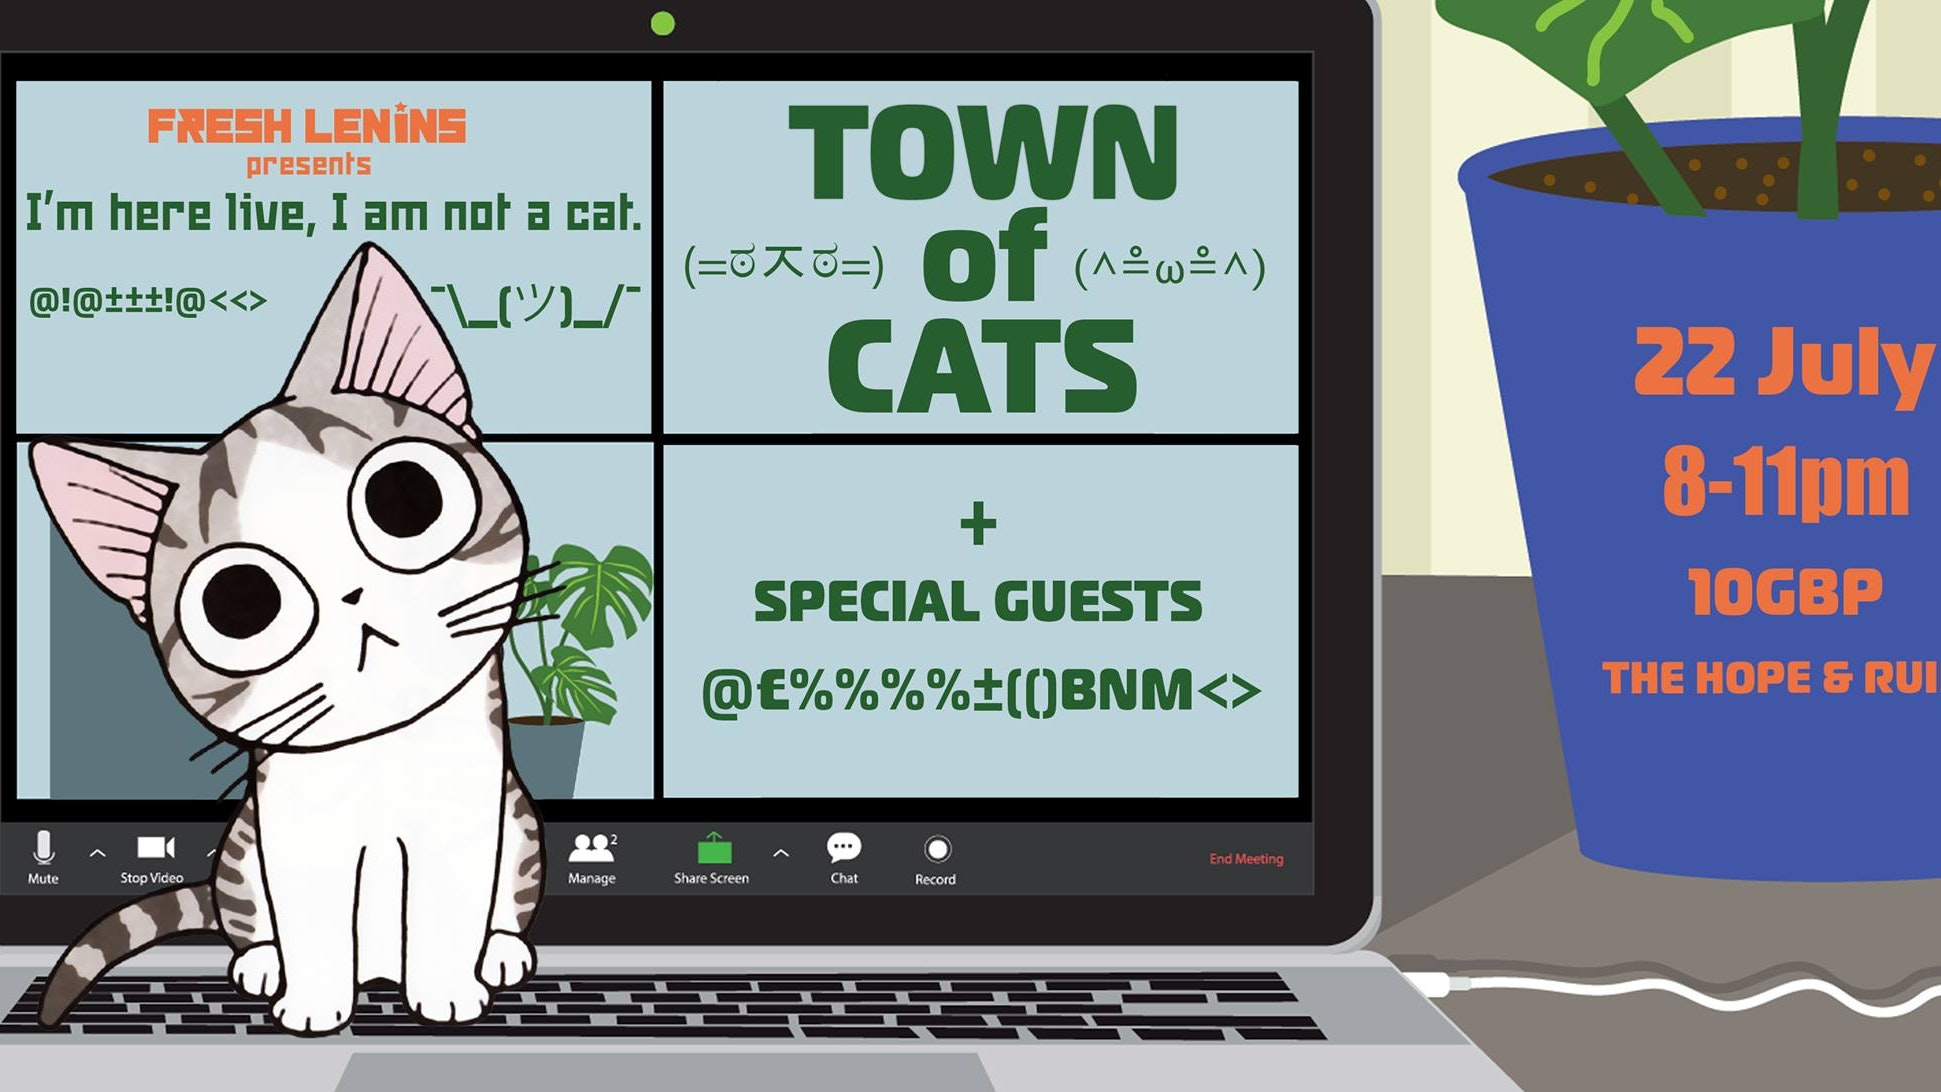 I Am Not A Cat: Town Of Cats + Guests